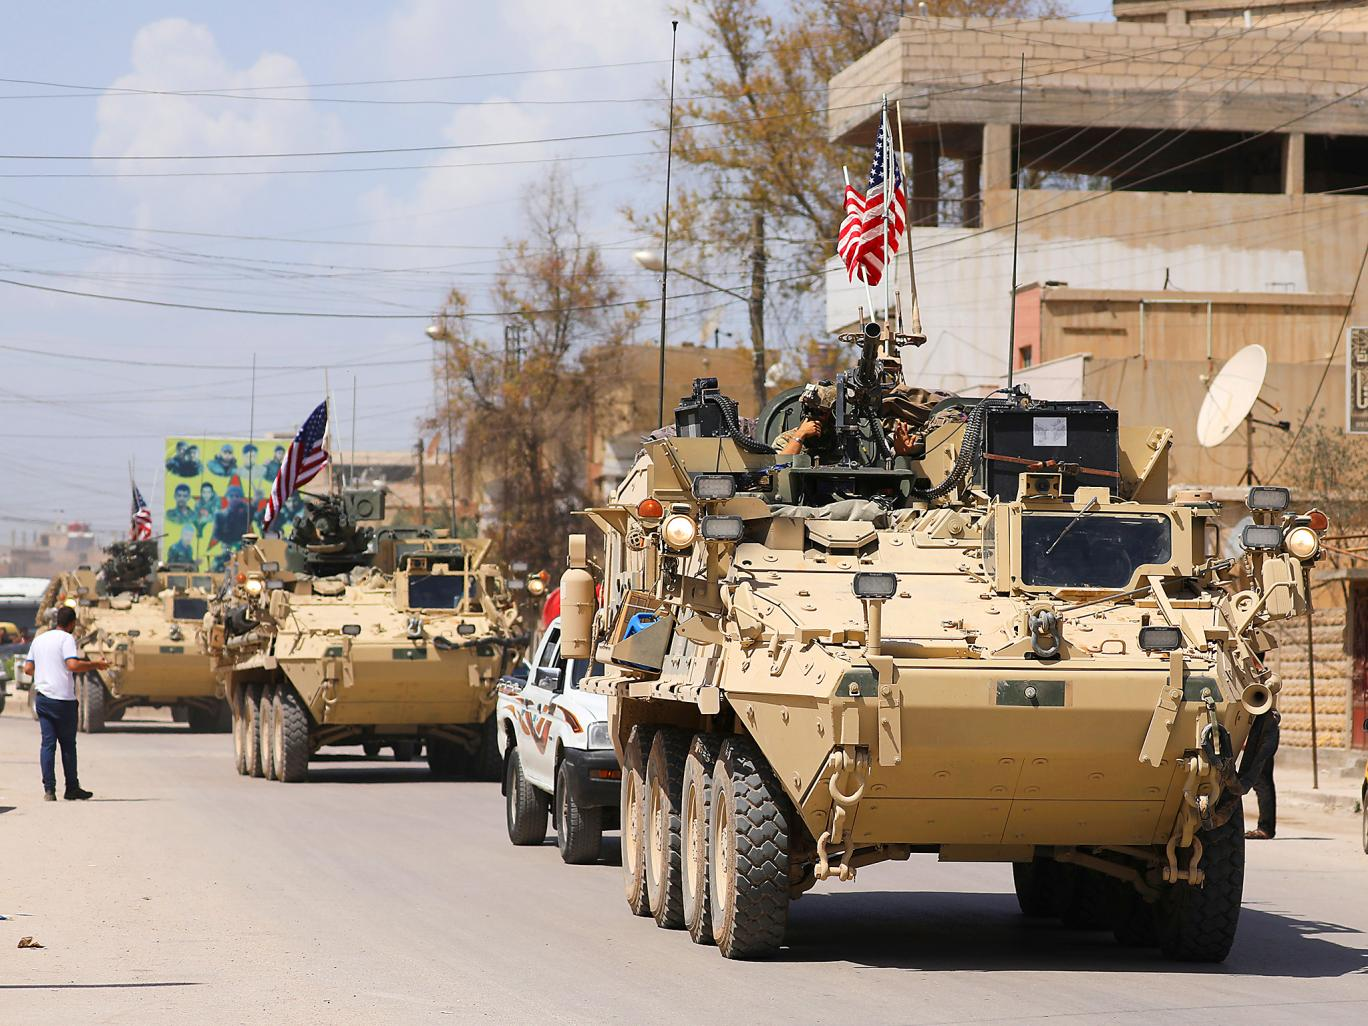 US facing new era of instability as Middle East sinks further into turmoil